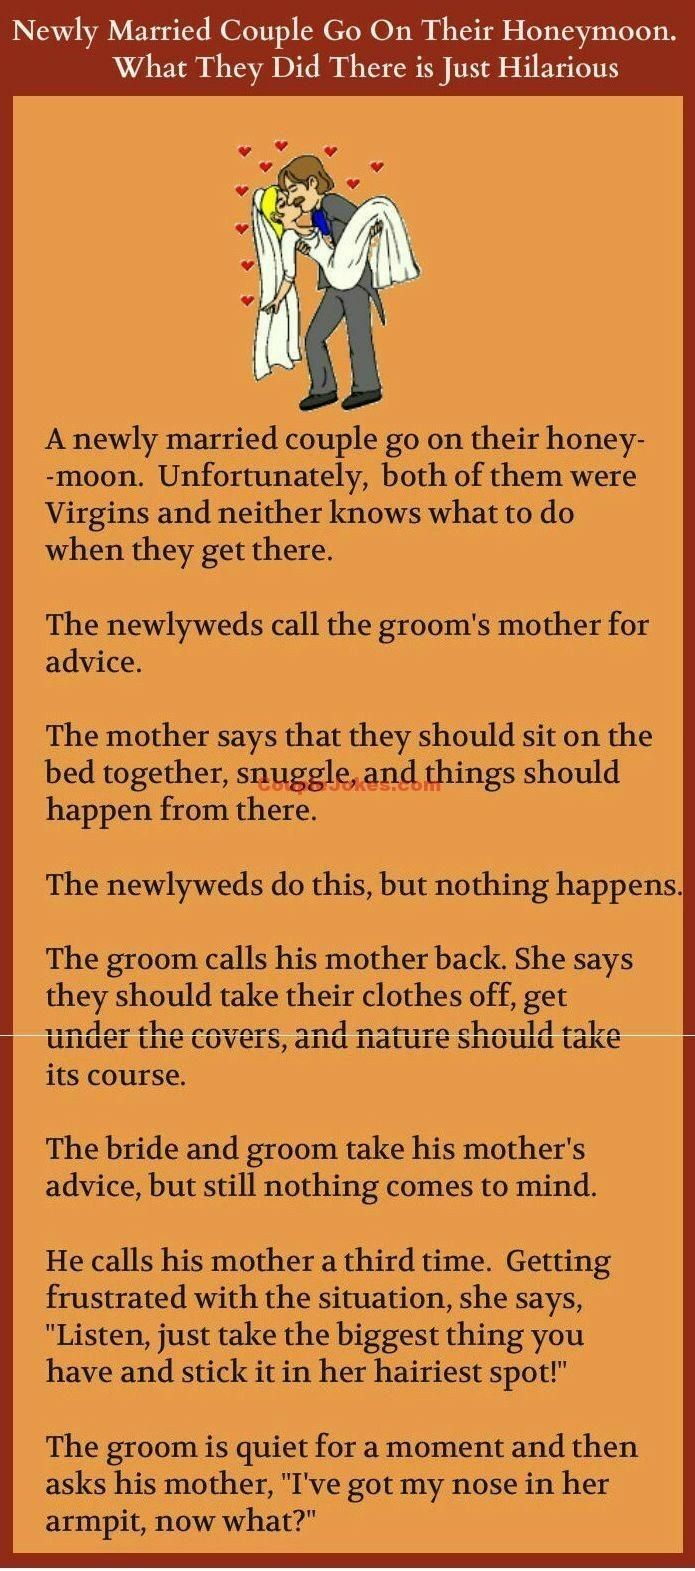 Pin By Darlene On Jokes Newly Married Quotes Couples Jokes Newly Married Couple